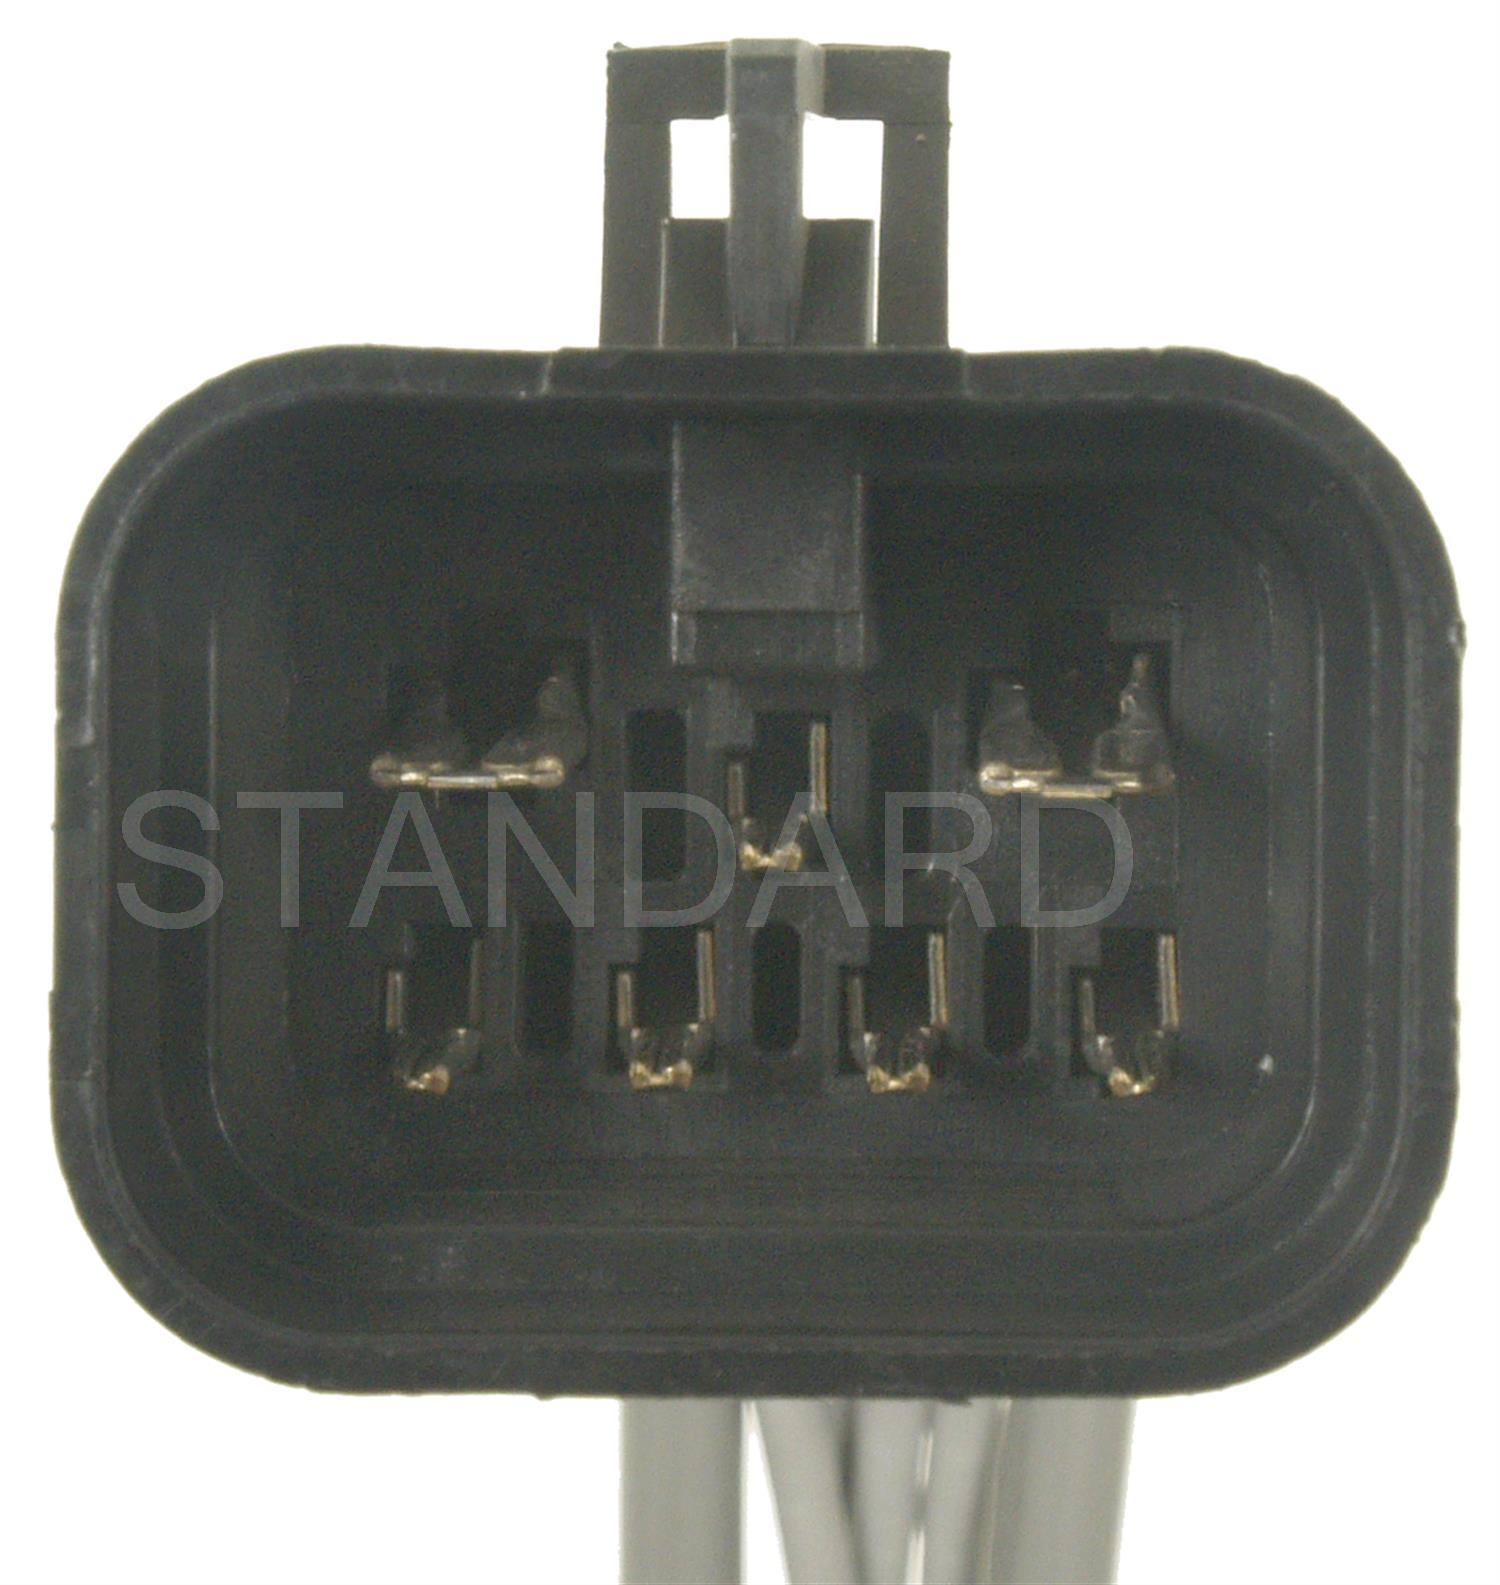 2005 Cadillac Sts Engine Wiring Harness Connector For Si S 1131